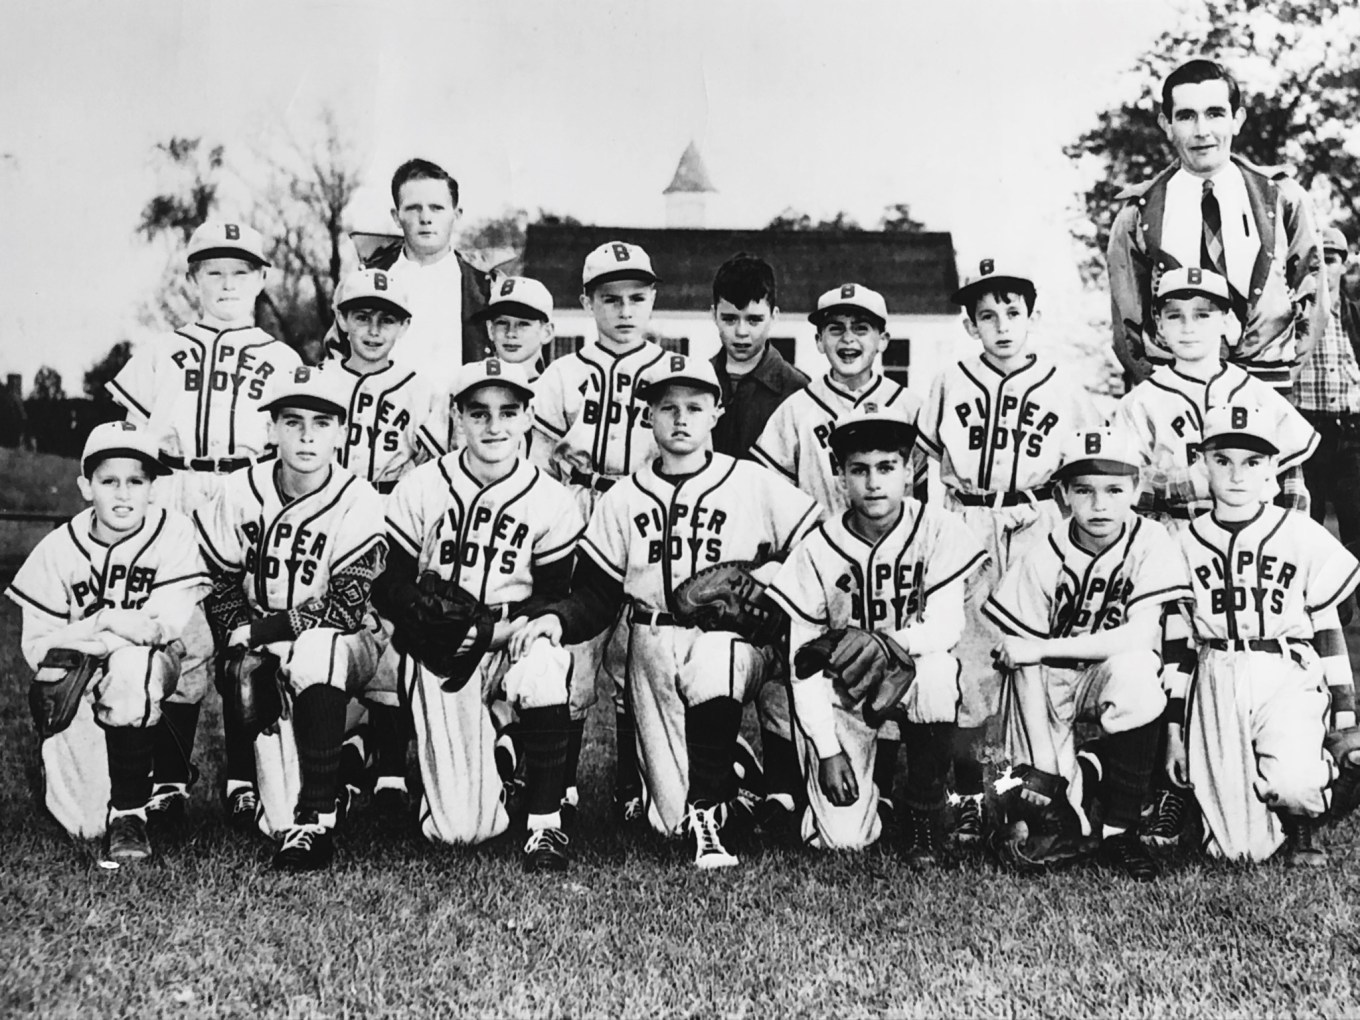 Piper Boys little league team, early 1950s Burlington MA